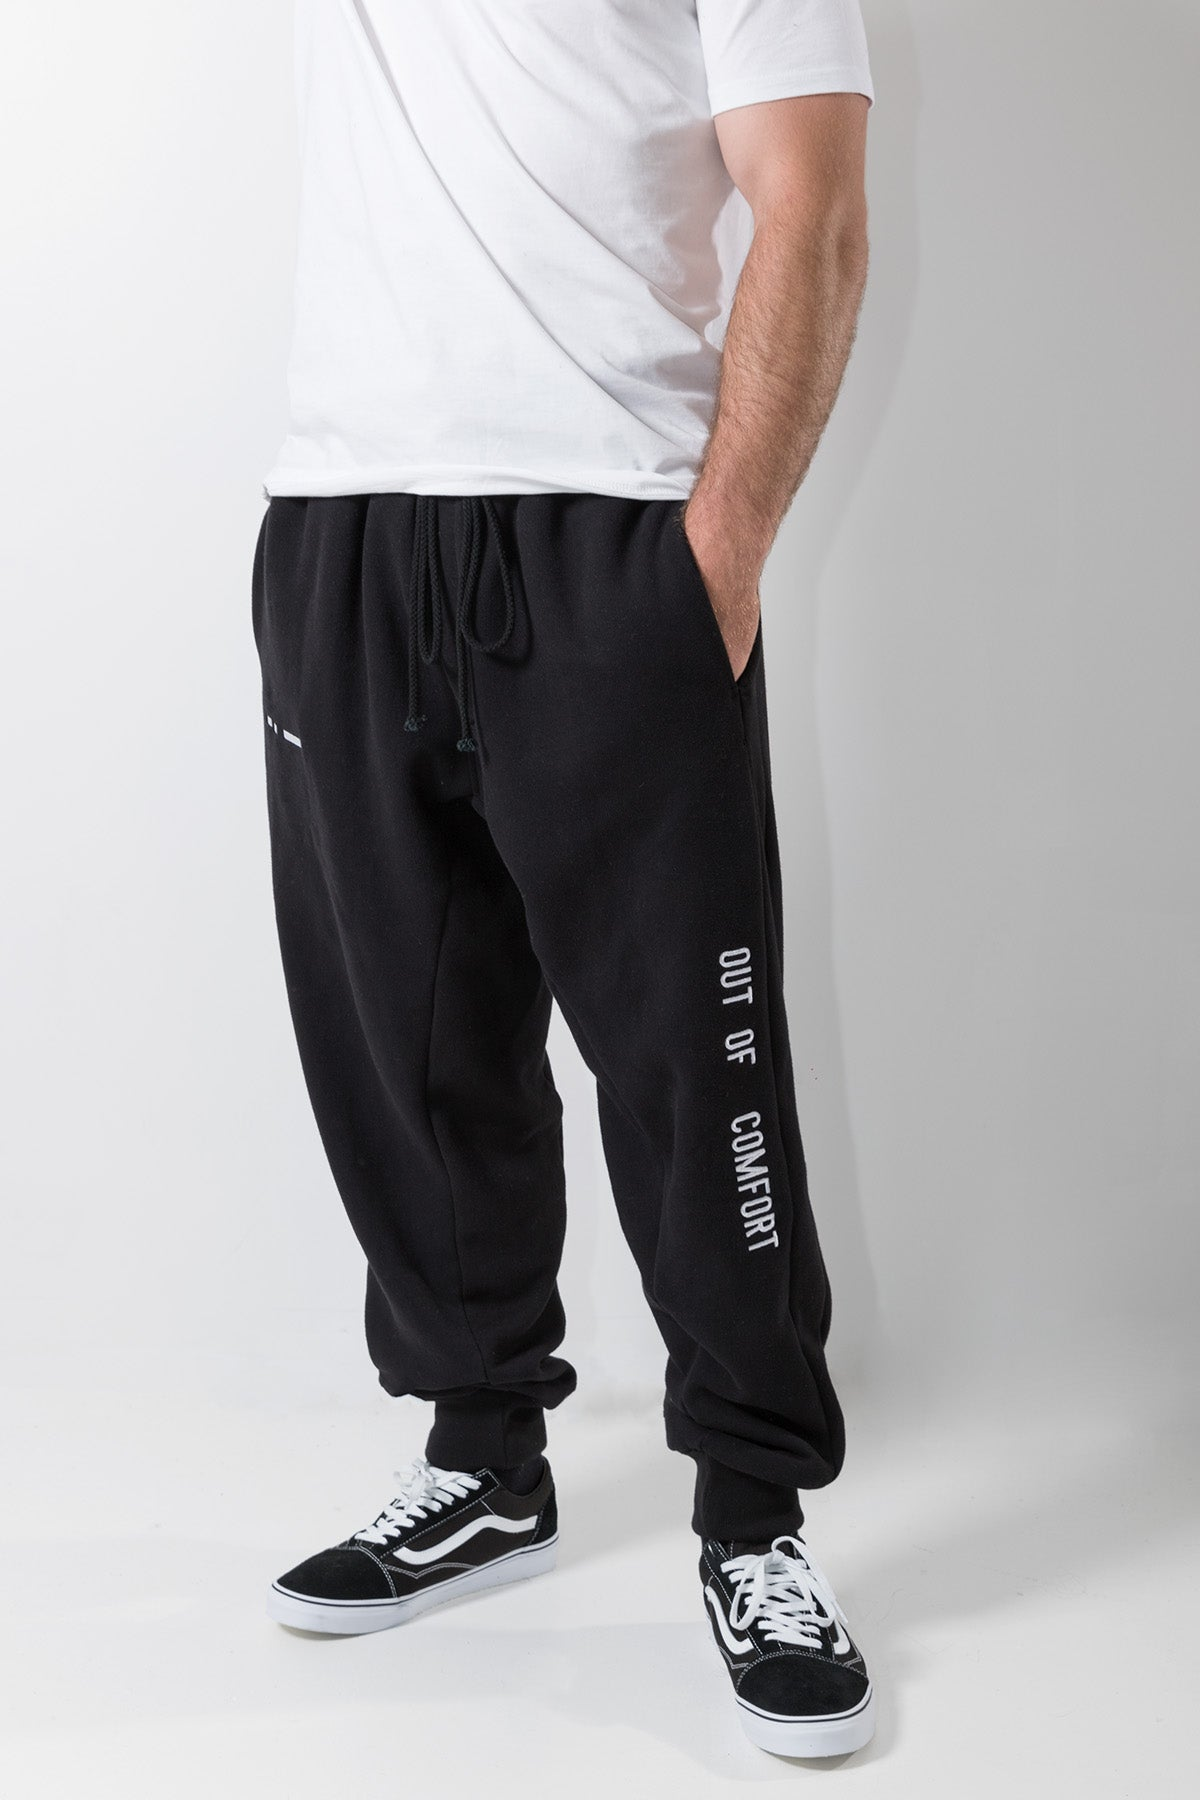 SHABAZZ TRACKPANTS